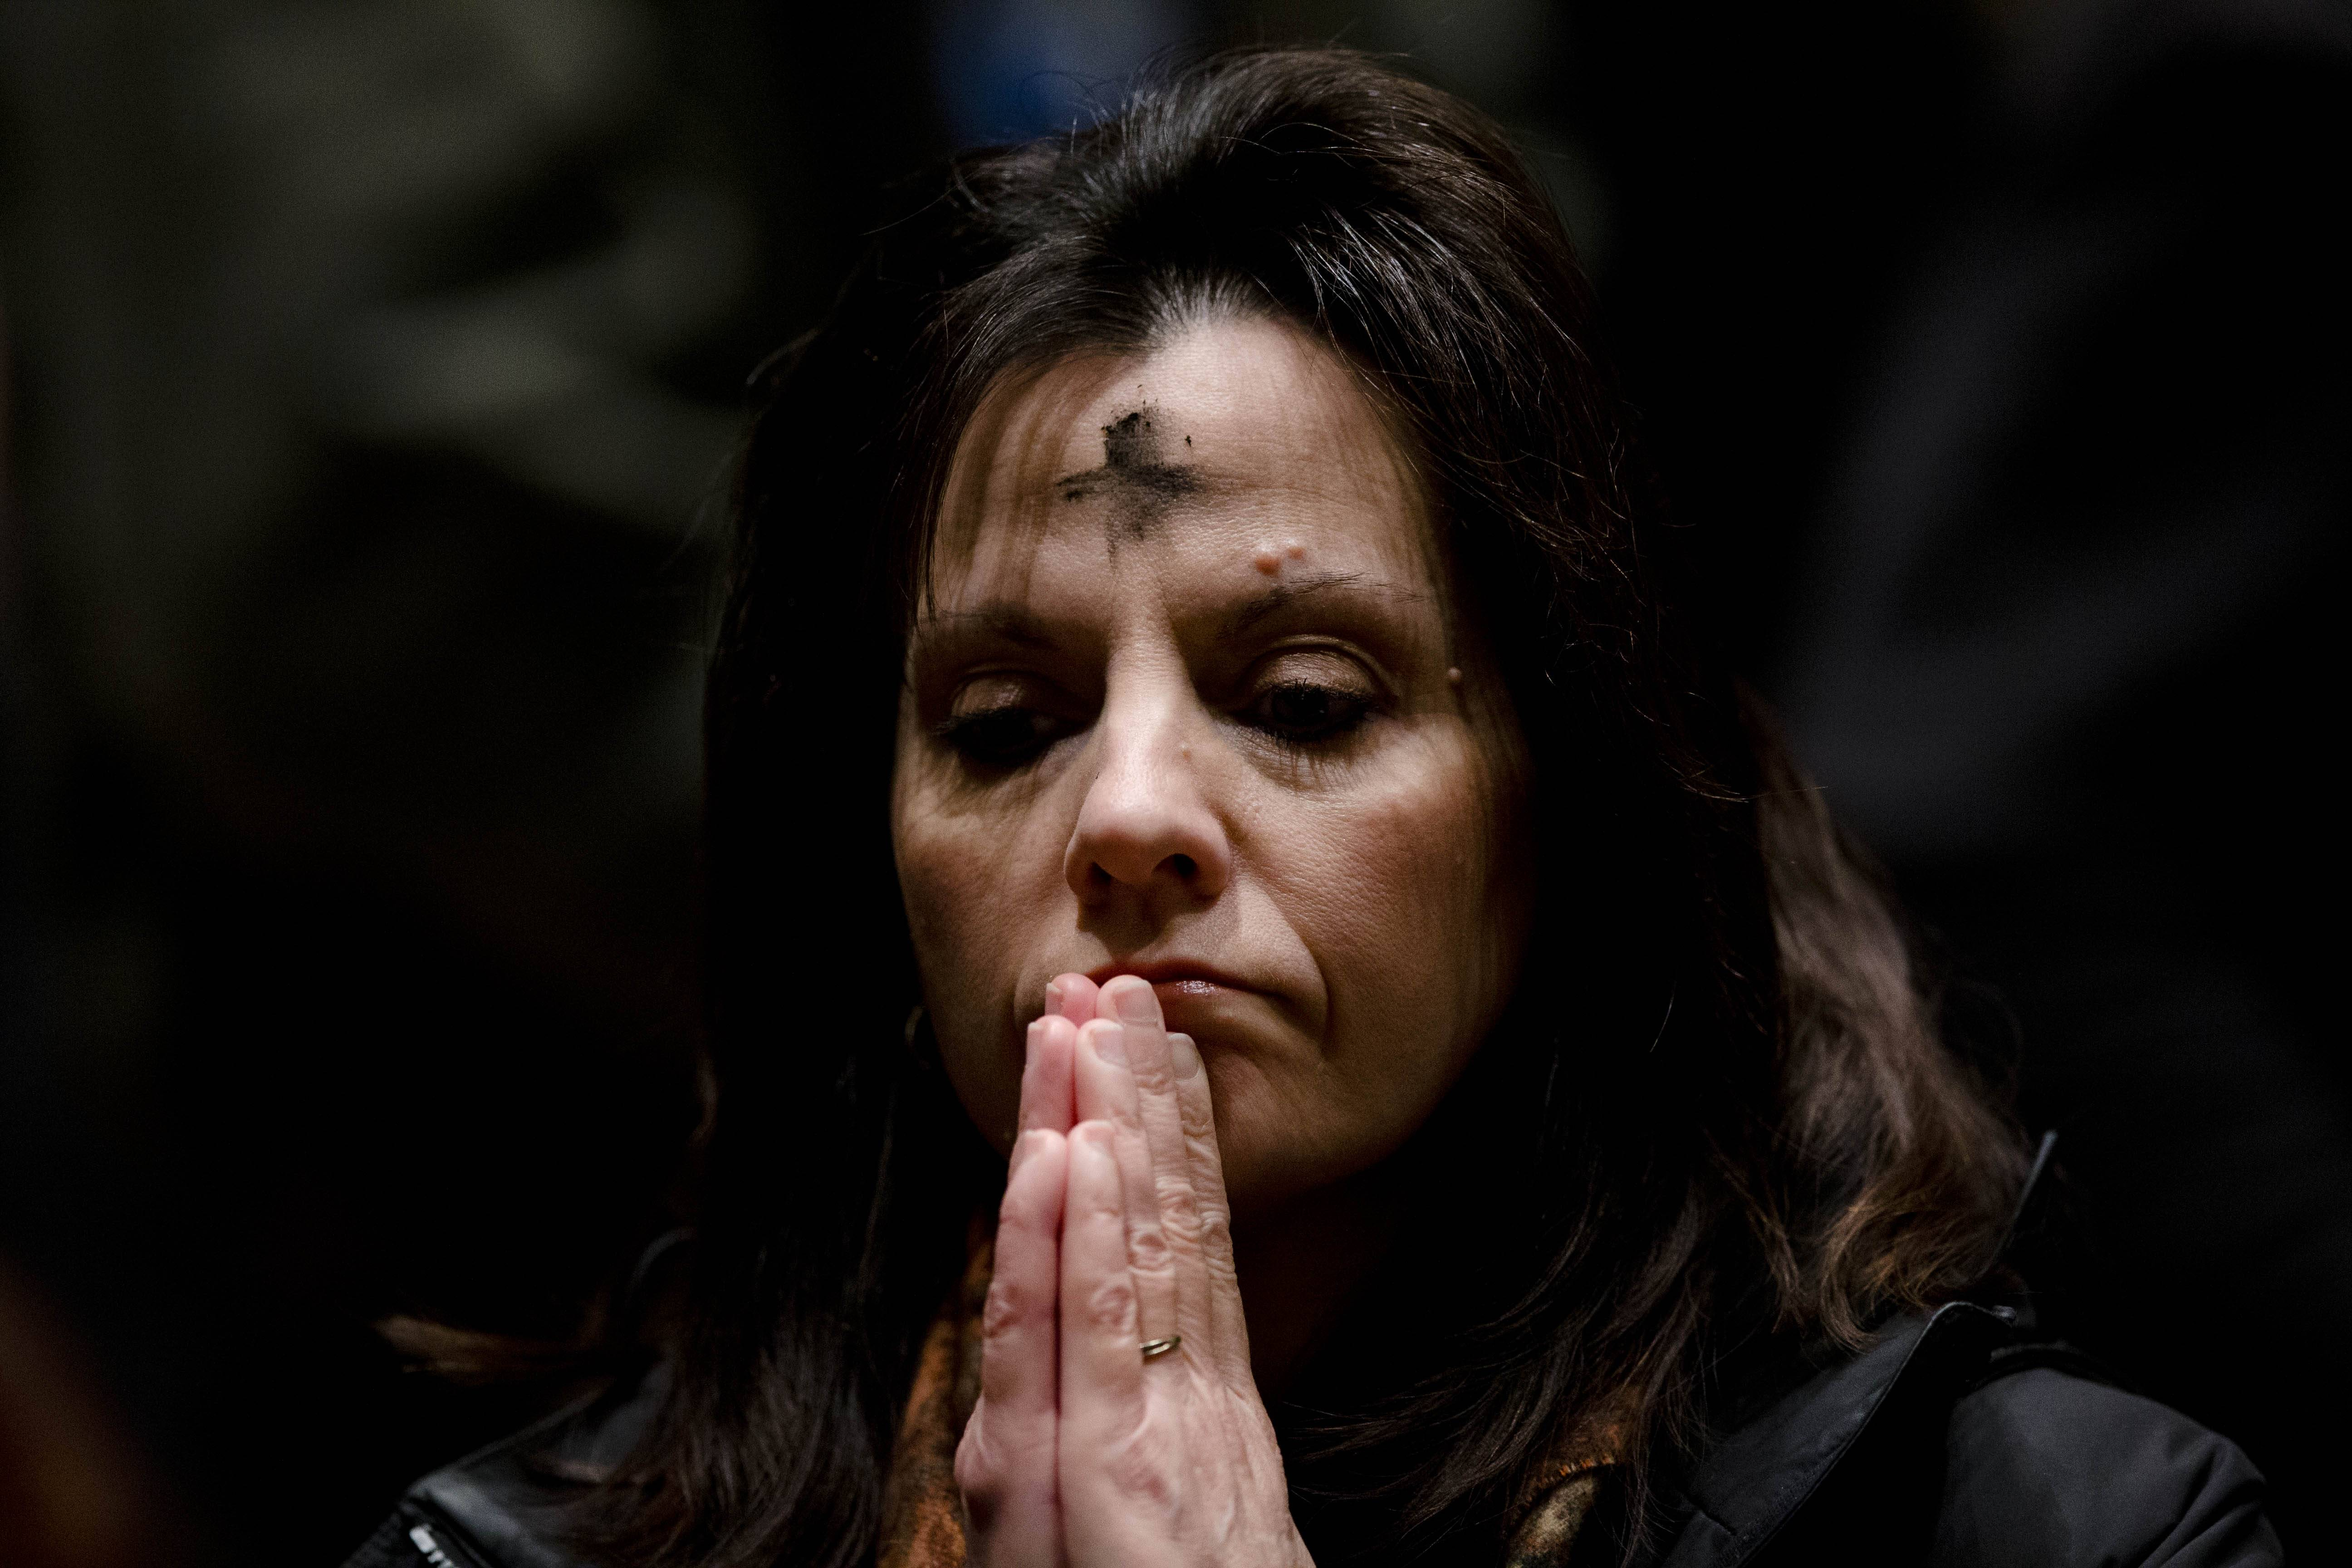 A woman prays as she participates in an Ash Wednesday Mass at the Cathedral Basilica of Saints Peter and Paul in Philadelphia.